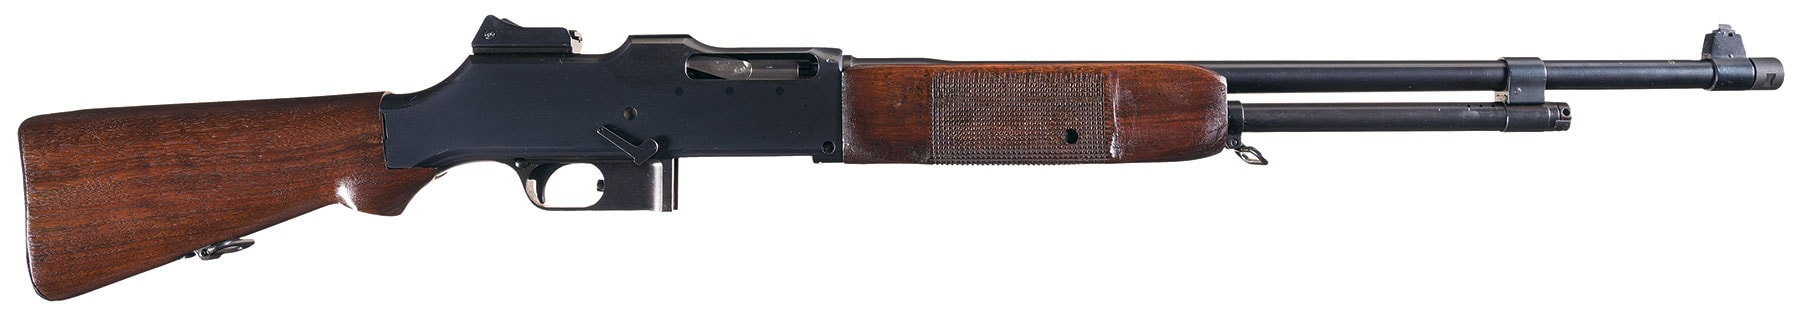 Marlin-Rockwell made a number of M1918 Browning Automatic Rifles (BARs) during World War I and this model, a true 1918 vintage example, escaped later modifications into the M1918A2 standard. Interestingly, it has British proofmarks.